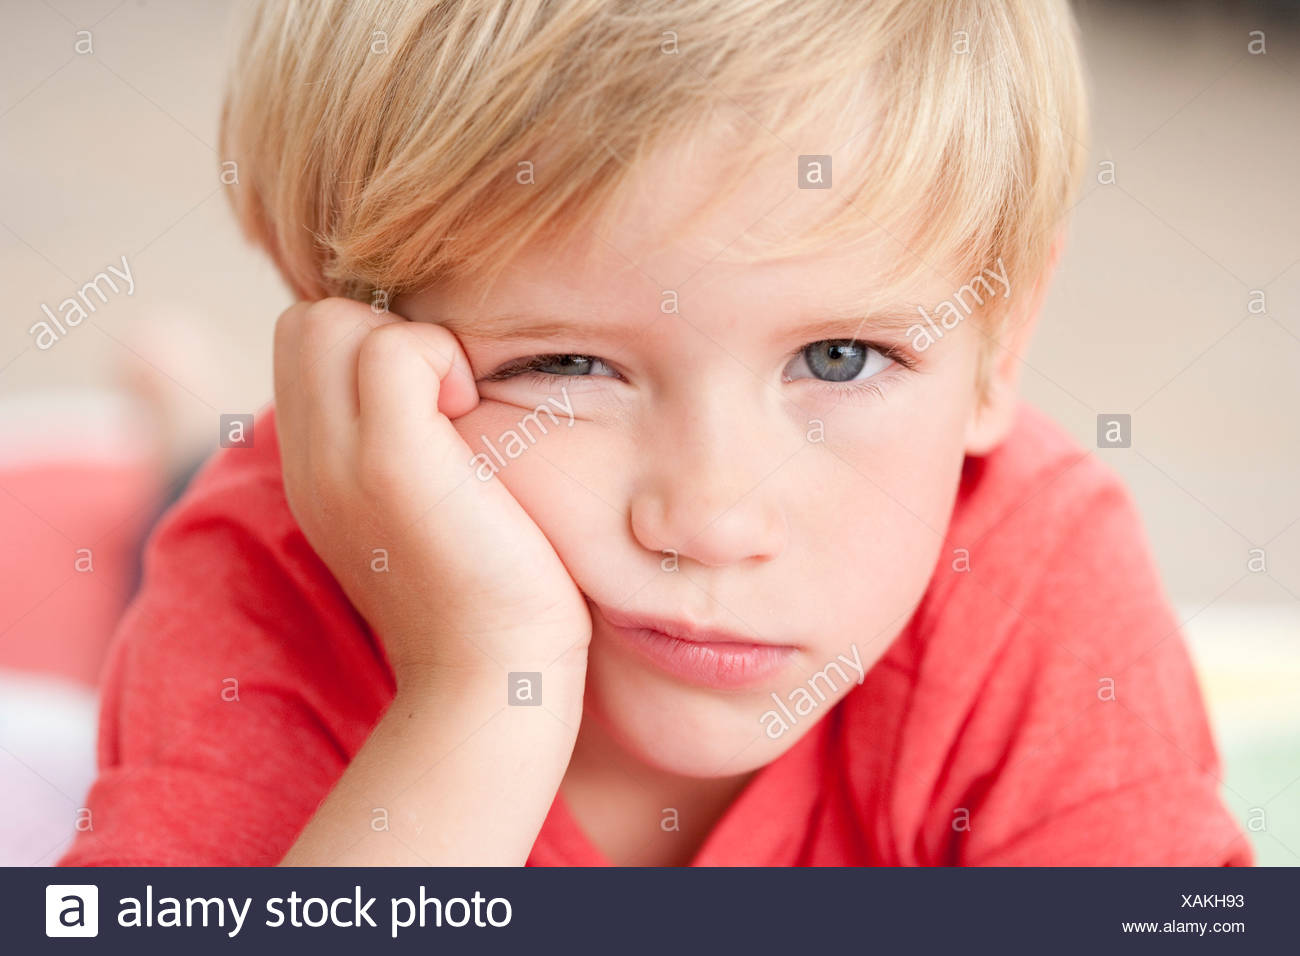 young boy looking bored at viewer Stock Photo